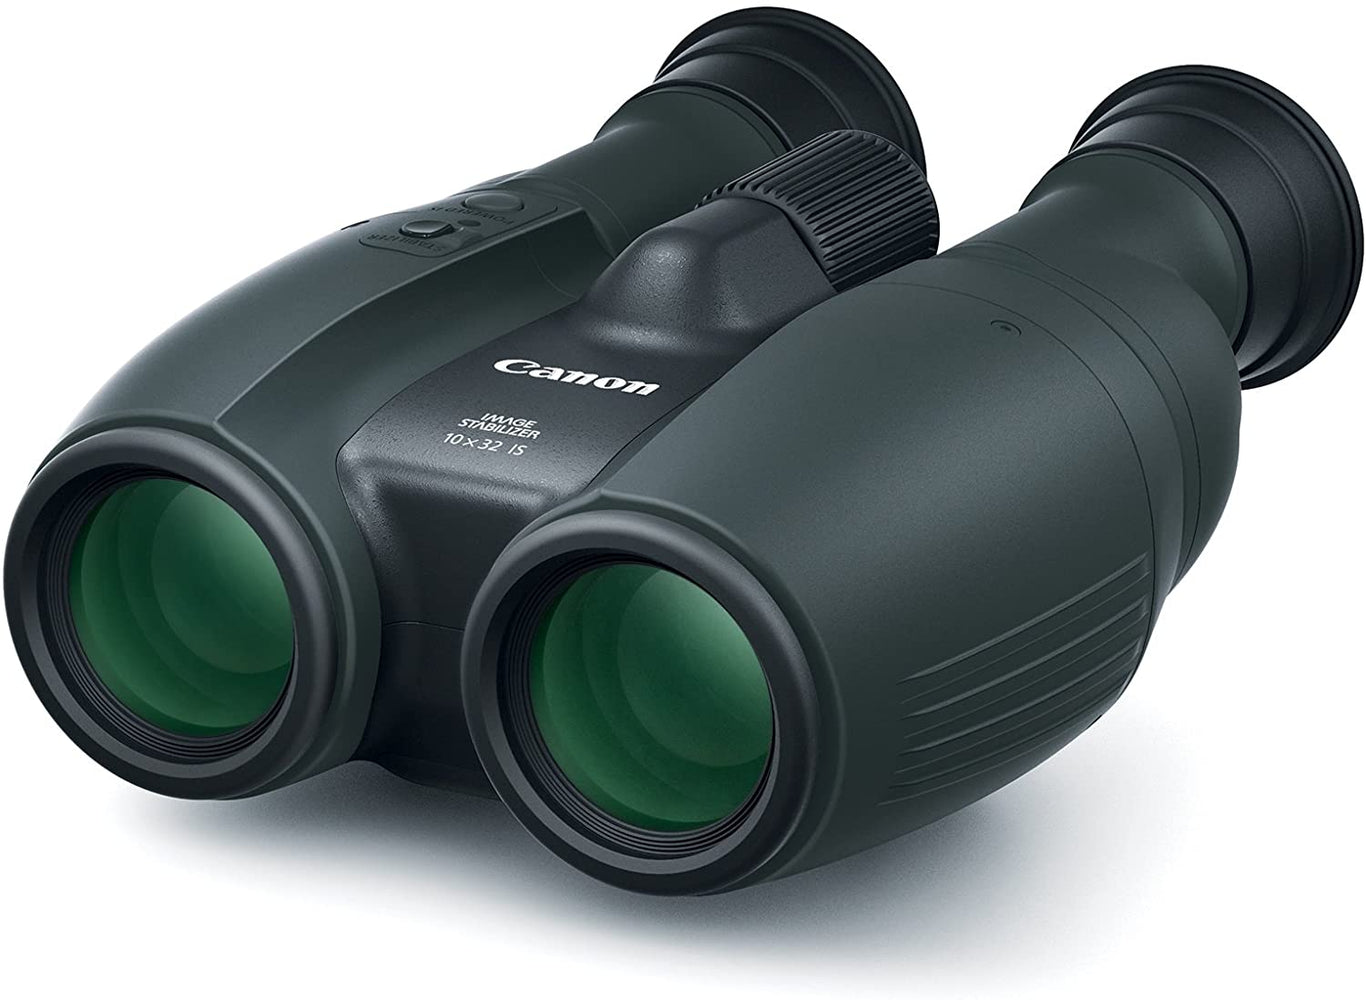 Canon Cameras US 10X32 is Image Stabilizing Binocular, Black (1372C002)